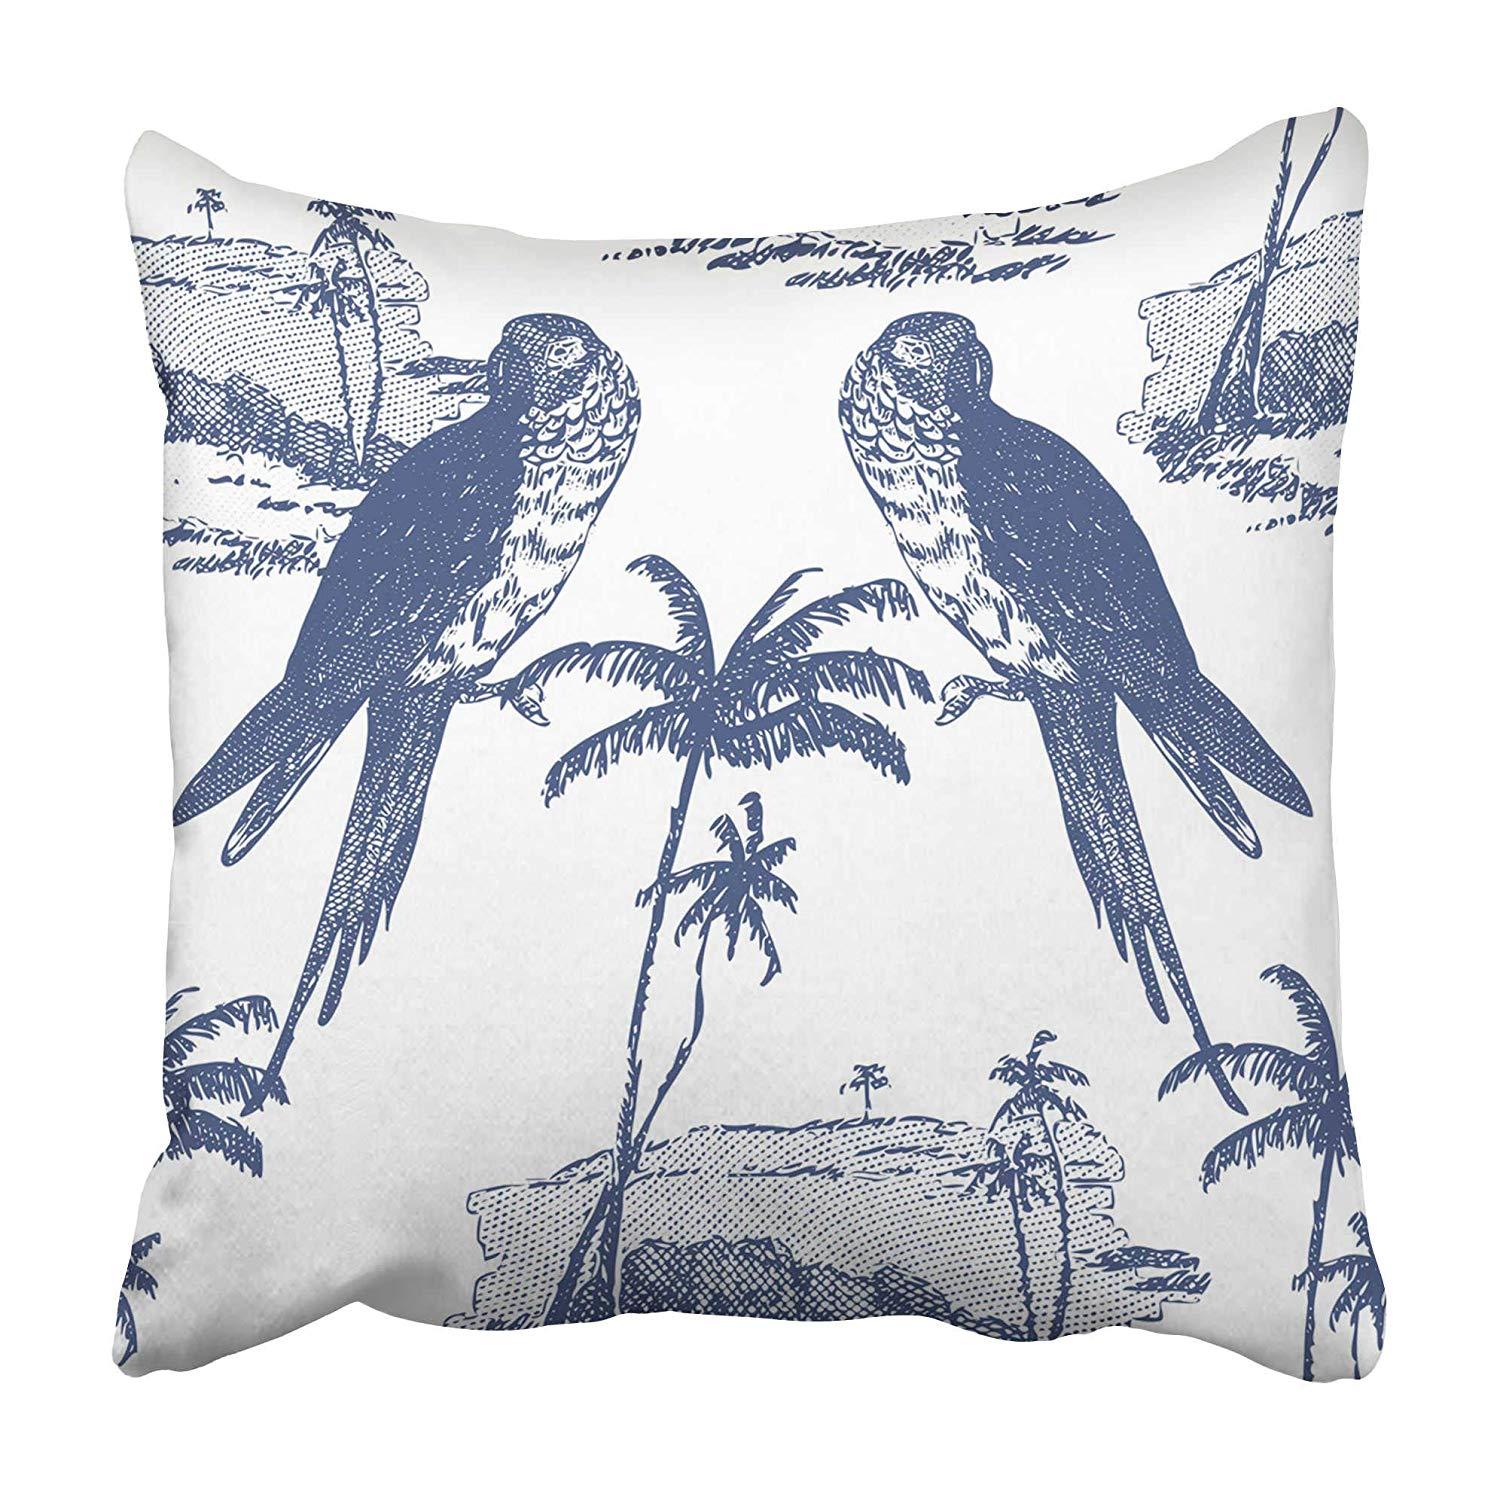 USART Blue Leaf Beautiful Vintage Floral Pattern Parrots and Palm Trees on White Botanical Pillowcase 20x20 inch